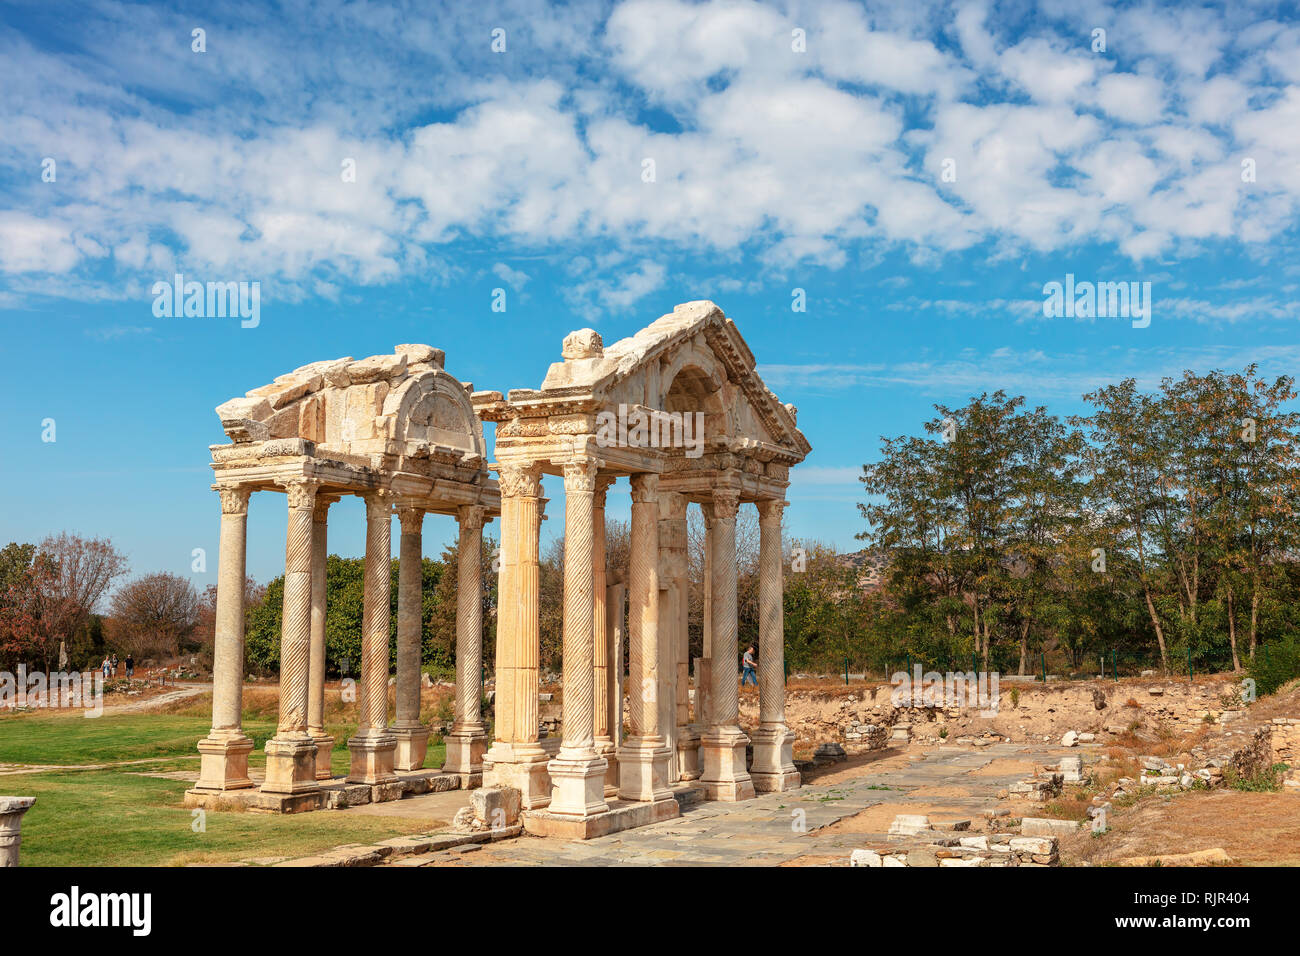 The Tetrapylon (monumental gate) at an archaeological site of Helenistic city of Aphrodisias in  western Anatolia, Turkey. - Stock Image